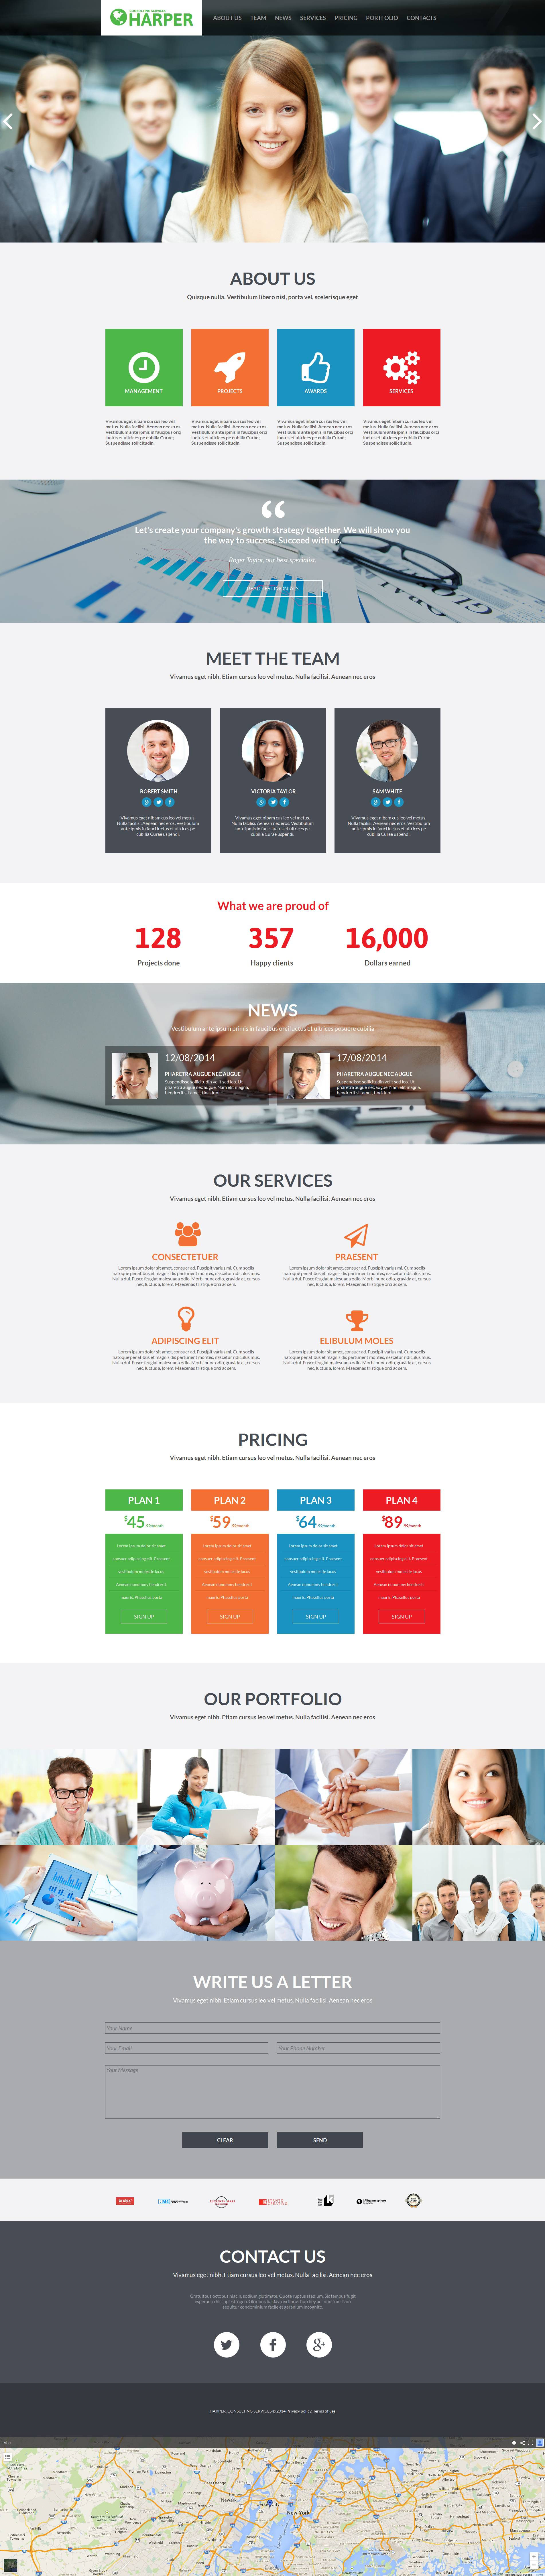 The Harper Business Moto CMS HTML Design 53229, one of the best Moto CMS HTML templates of its kind (business, most popular), also known as harper business Moto CMS HTML template, expert Moto CMS HTML template, success company Moto CMS HTML template, enterprise solution Moto CMS HTML template, business Moto CMS HTML template, industry Moto CMS HTML template, technical Moto CMS HTML template, clients Moto CMS HTML template, customer support Moto CMS HTML template, automate Moto CMS HTML template, flow Moto CMS HTML template, services Moto CMS HTML template, plug-in Moto CMS HTML template, flex Moto CMS HTML template, profile Moto CMS HTML template, principles Moto CMS HTML template, web products Moto CMS HTML template, technology system and related with harper business, expert, success company, enterprise solution, business, industry, technical, clients, customer support, automate, flow, services, plug-in, flex, profile, principles, web products, technology system, etc.